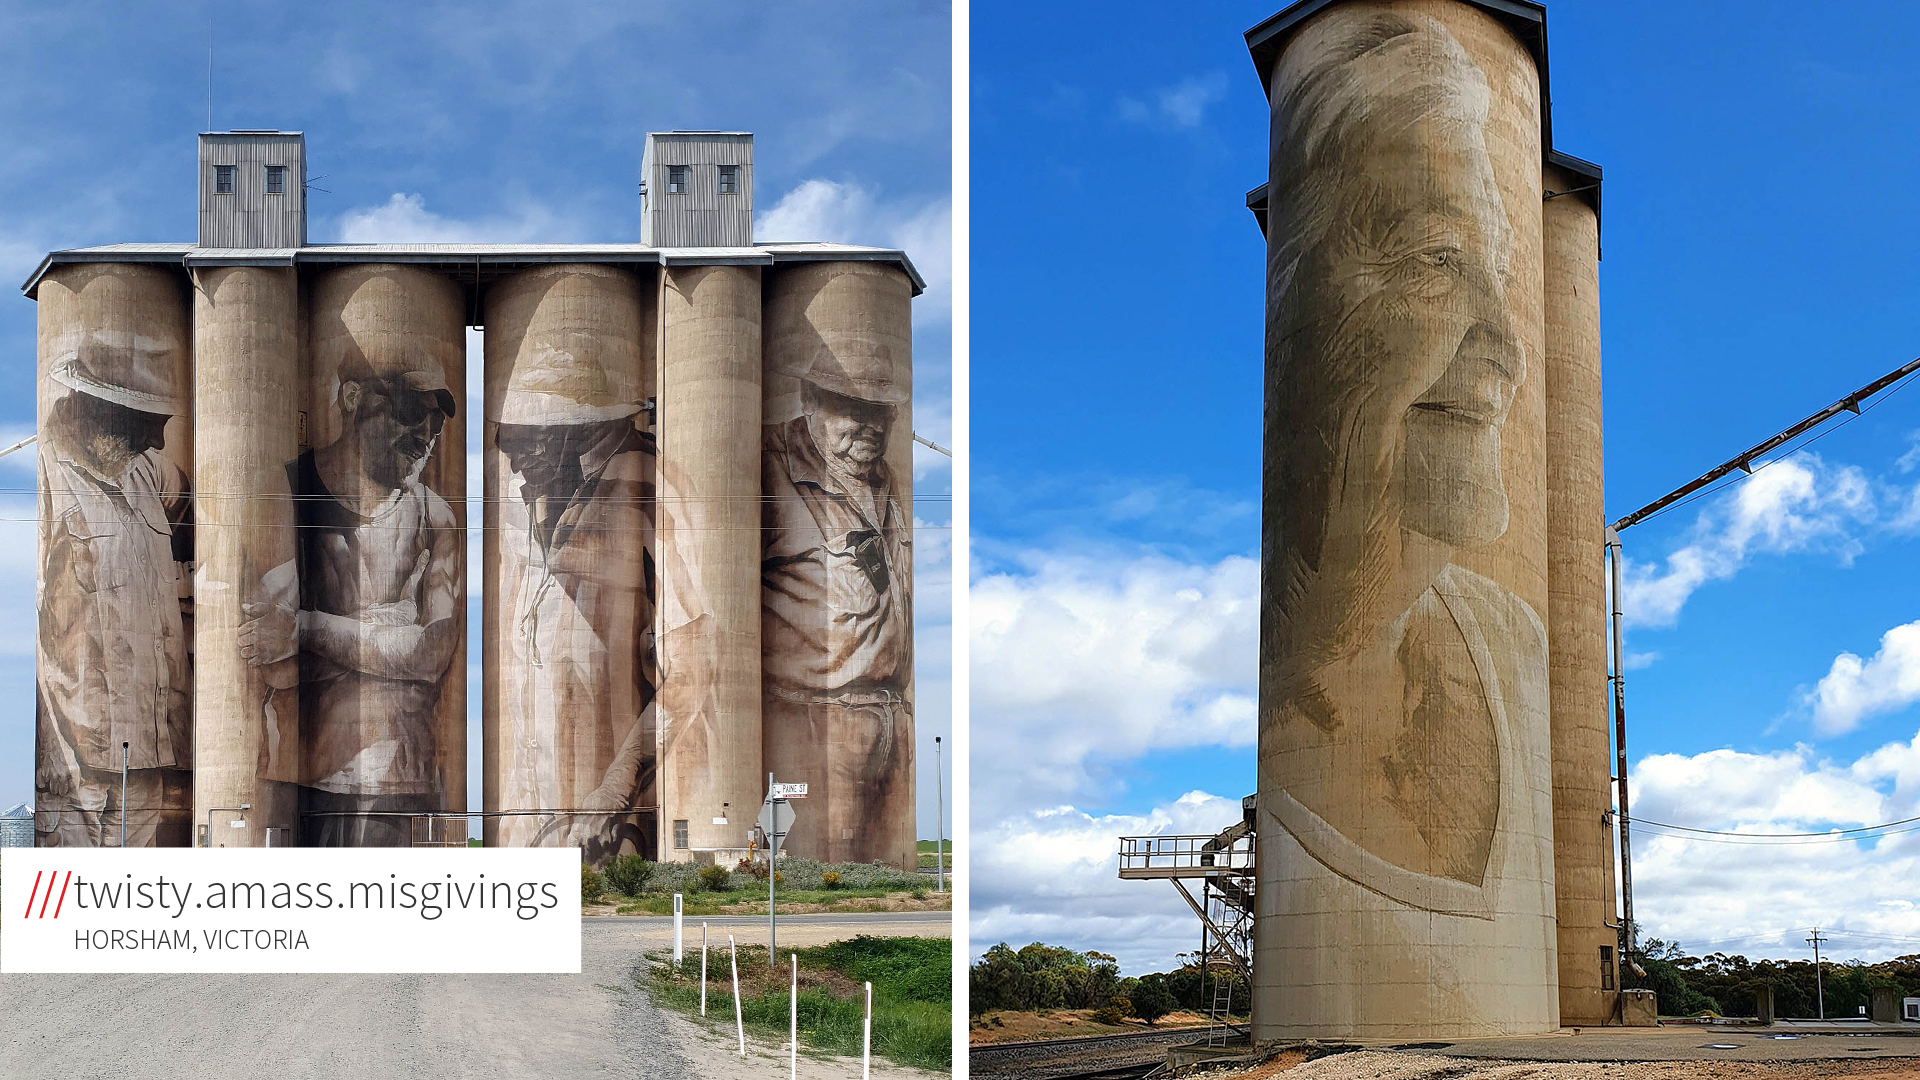 Silos with imagery